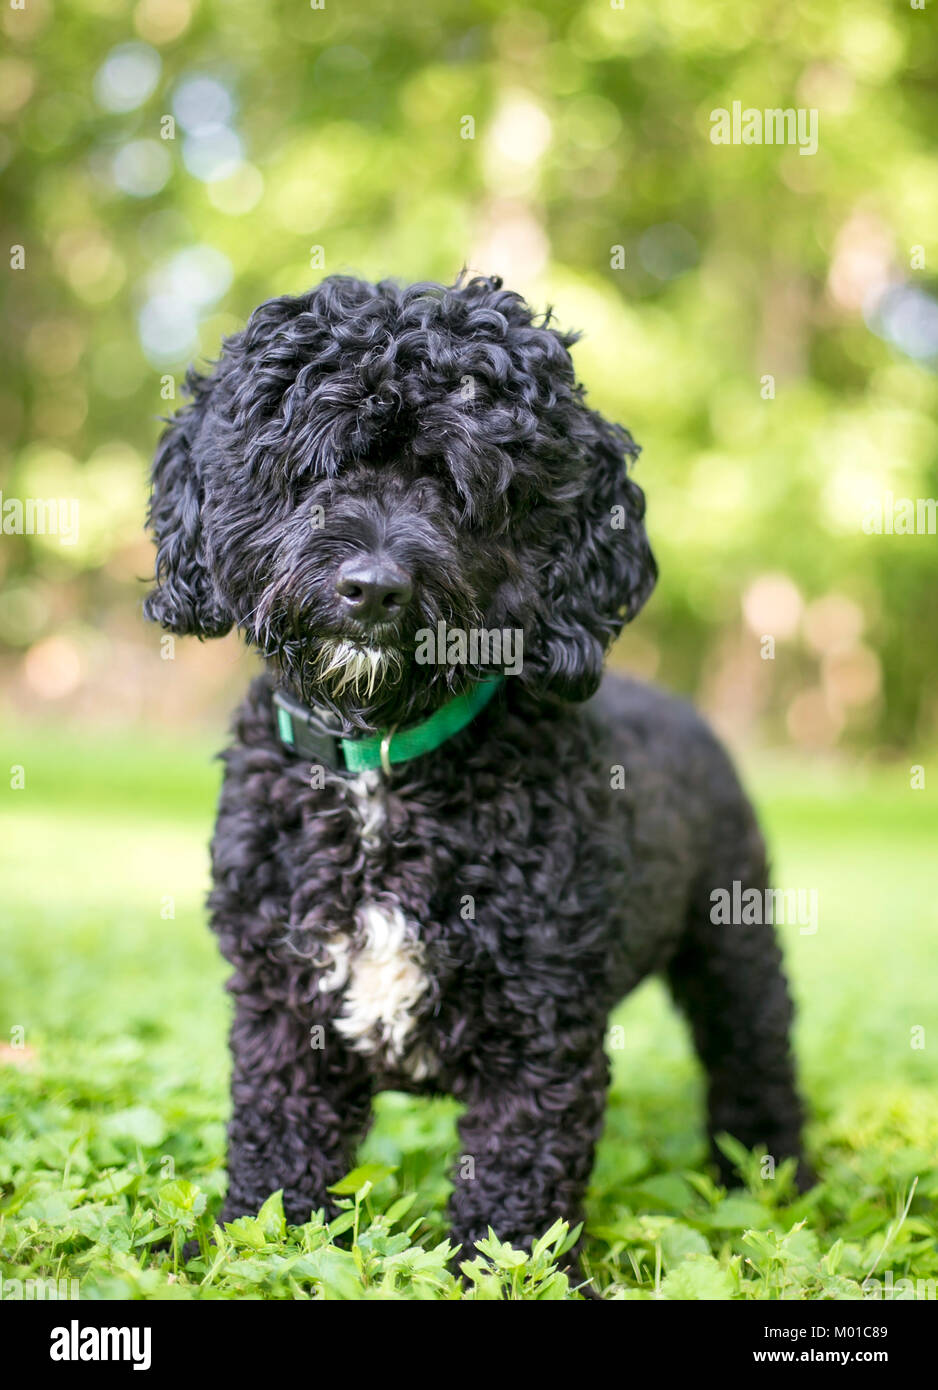 Portrait of a black and white Poodle mixed breed dog outdoors - Stock Image